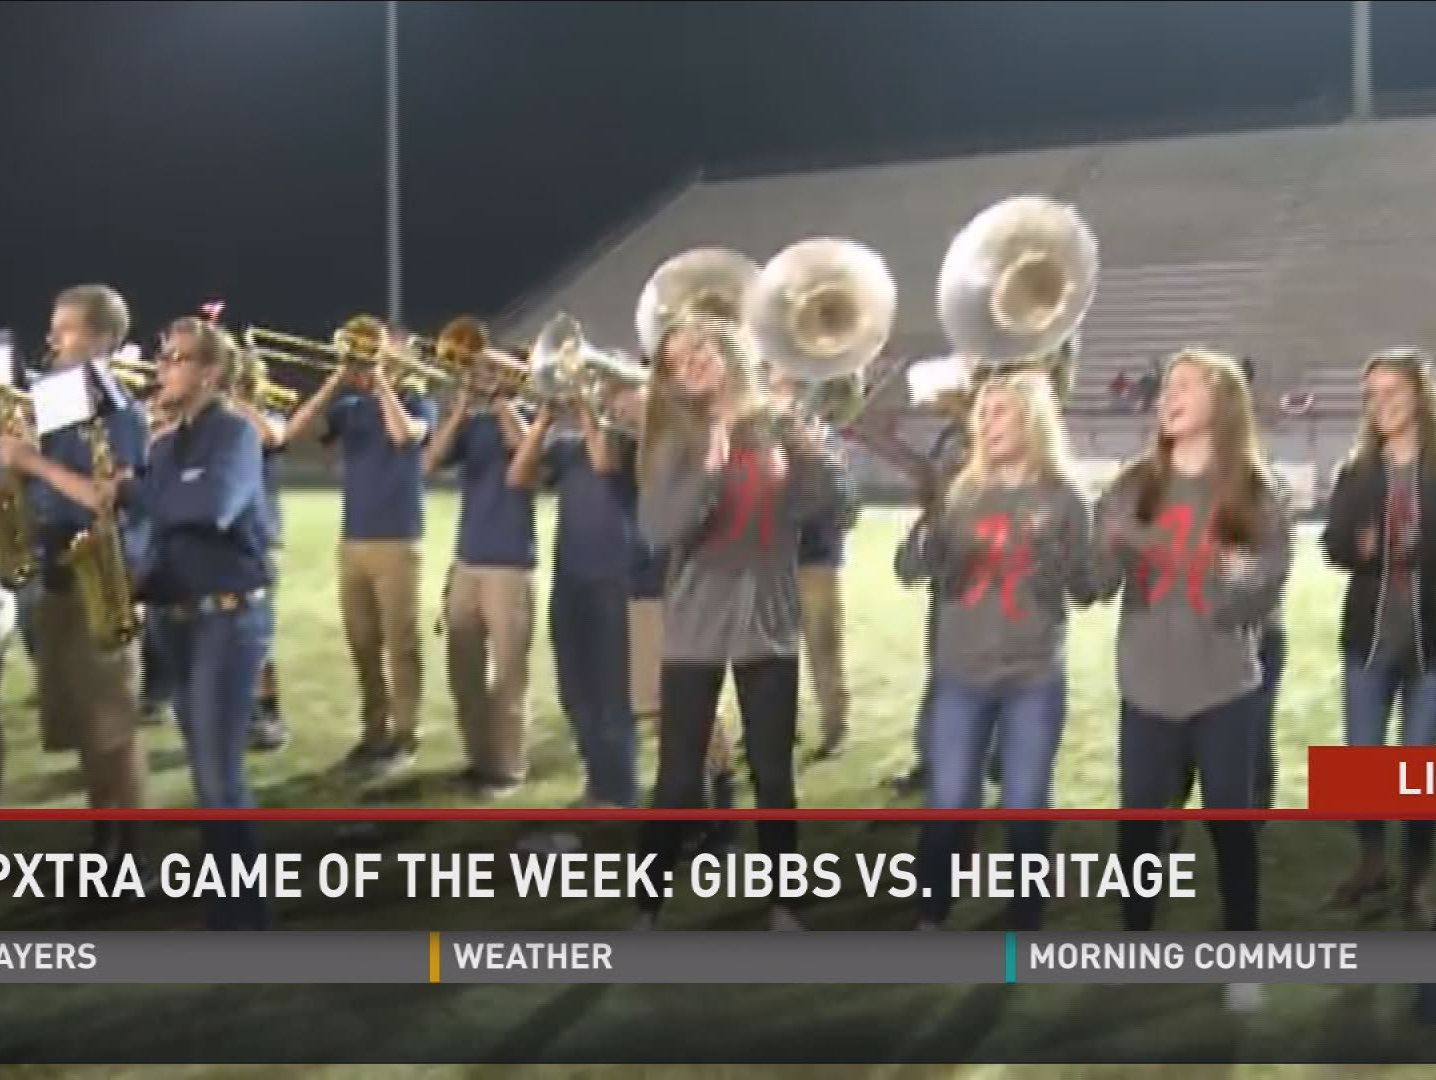 The Heritage High School band, cheerleaders, and dance team perform during the PrepXtra Game of the Week pep rally